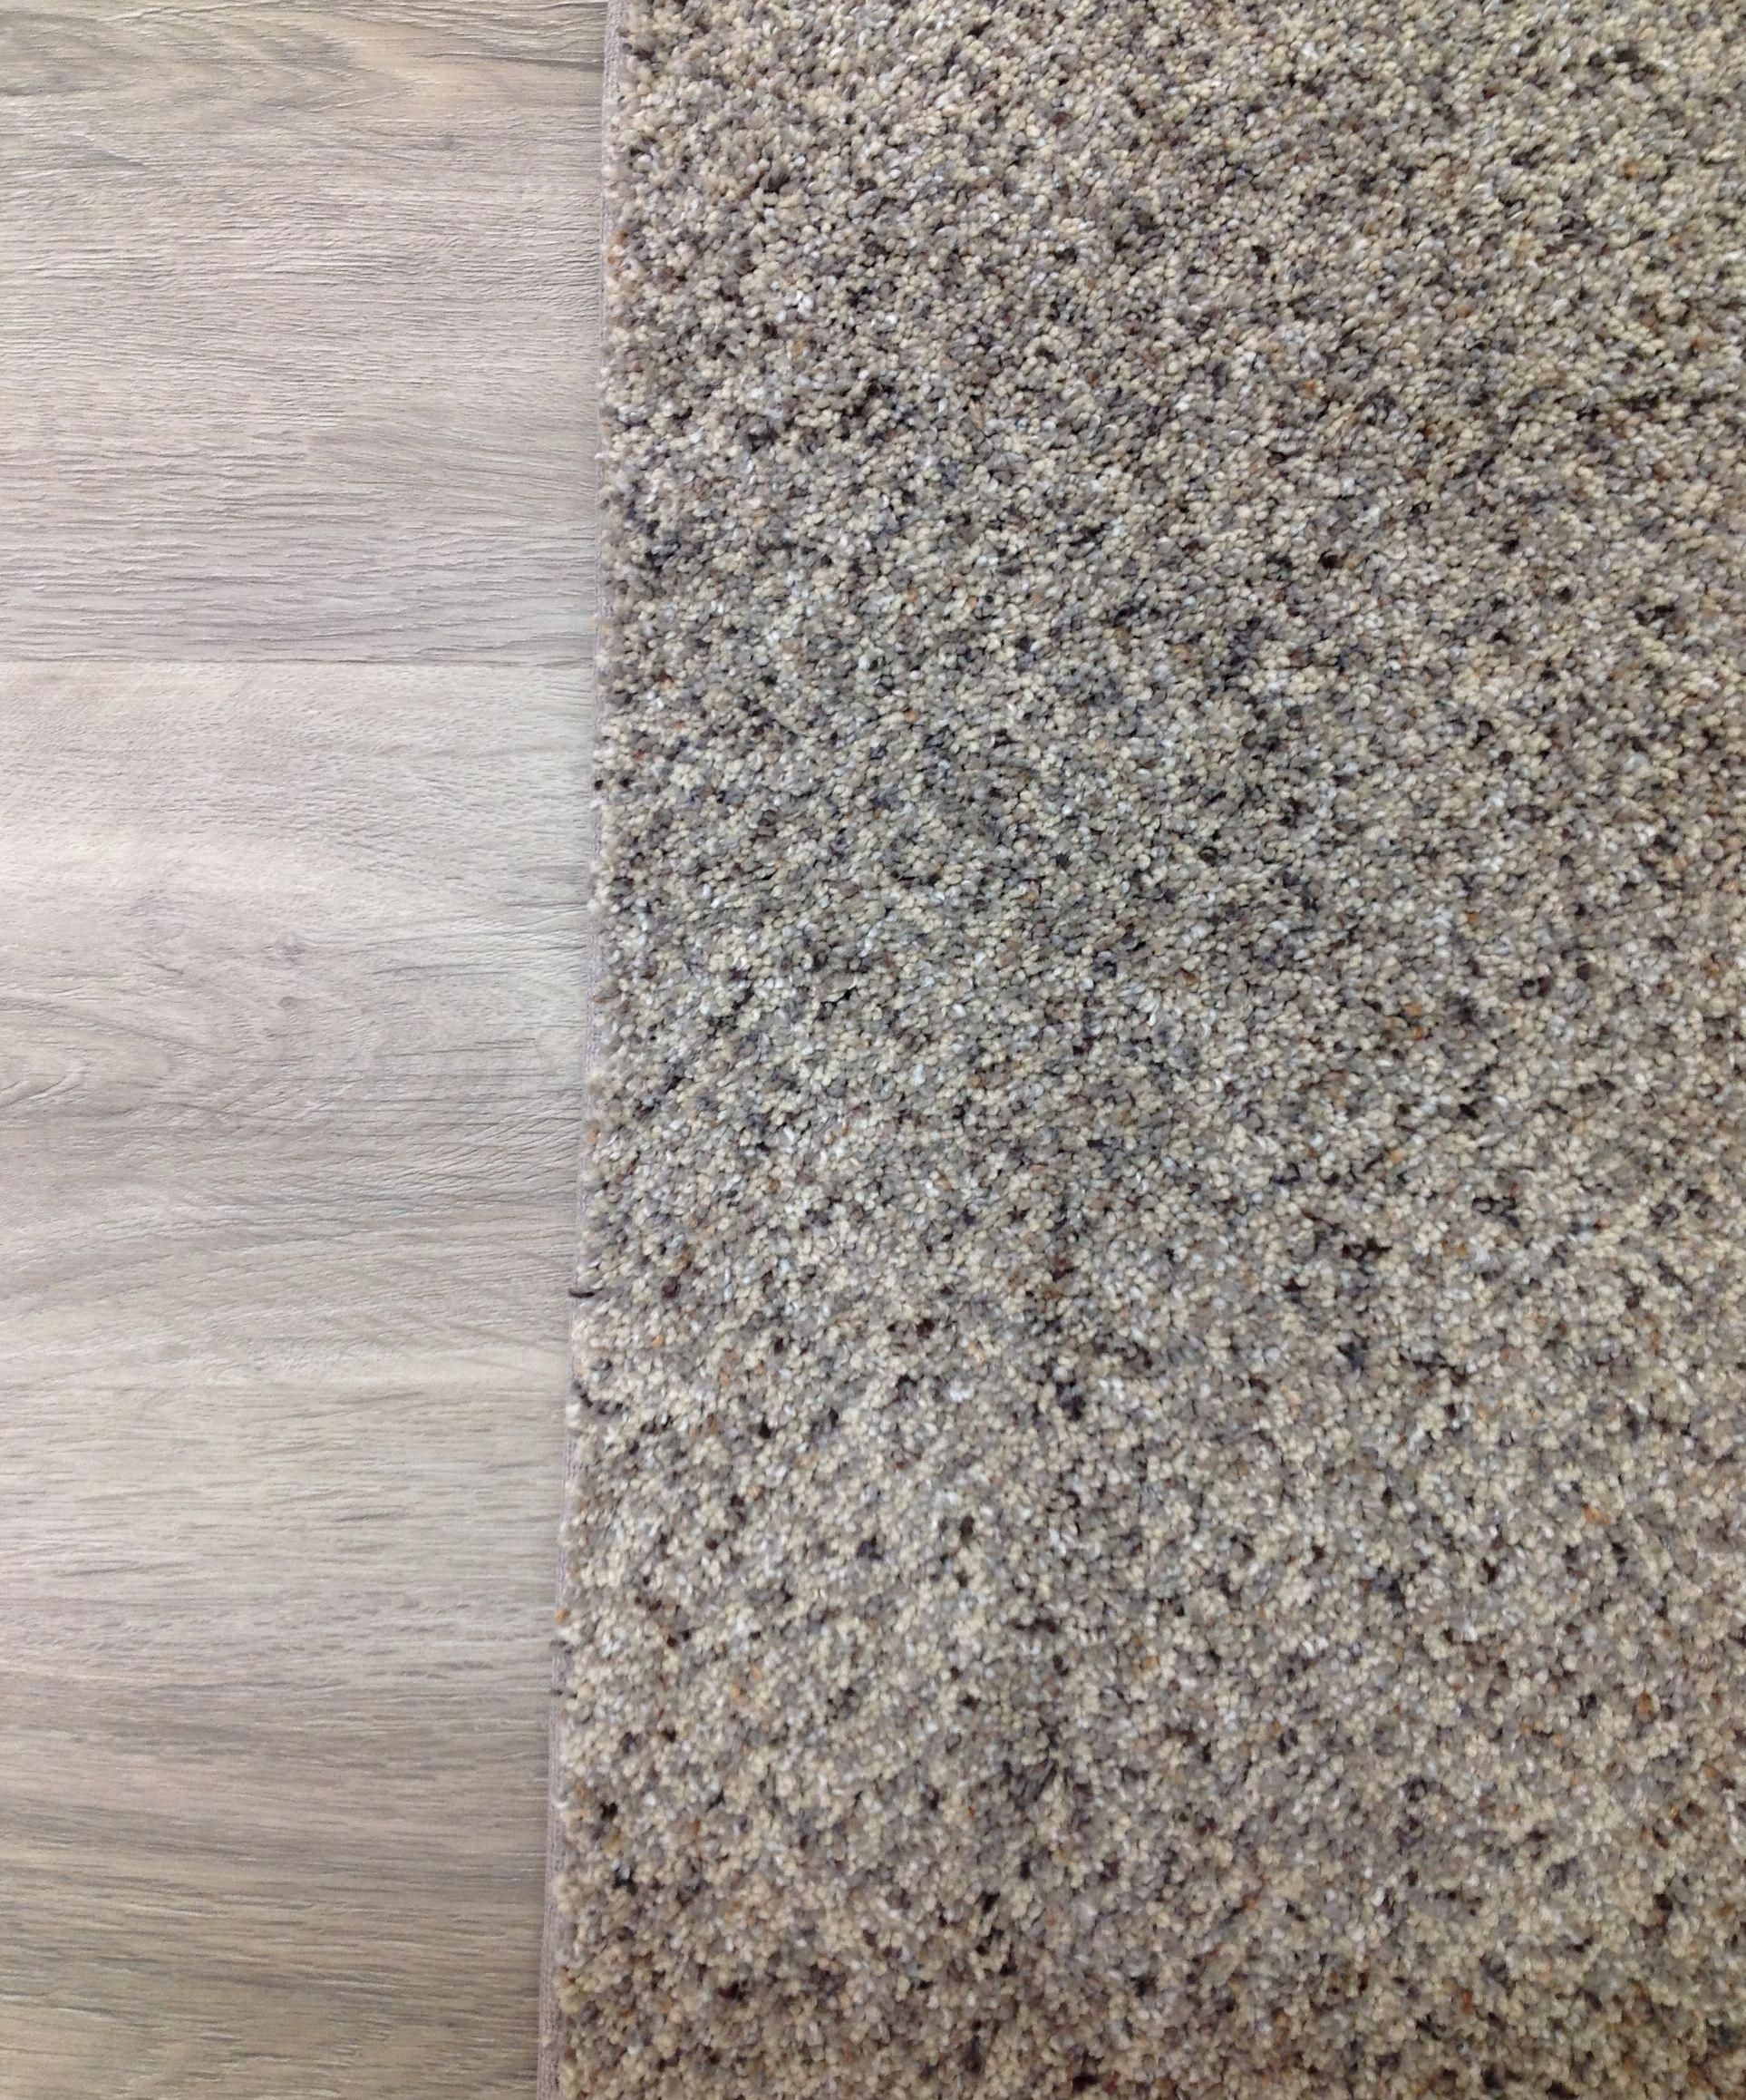 Love Southwind S Grey Fleck Carpet Especially Paired With A Light Grey Wood Floor Flooringideasgrey Bedroom Carpet Grey Wood Tile Grey Wood Floors